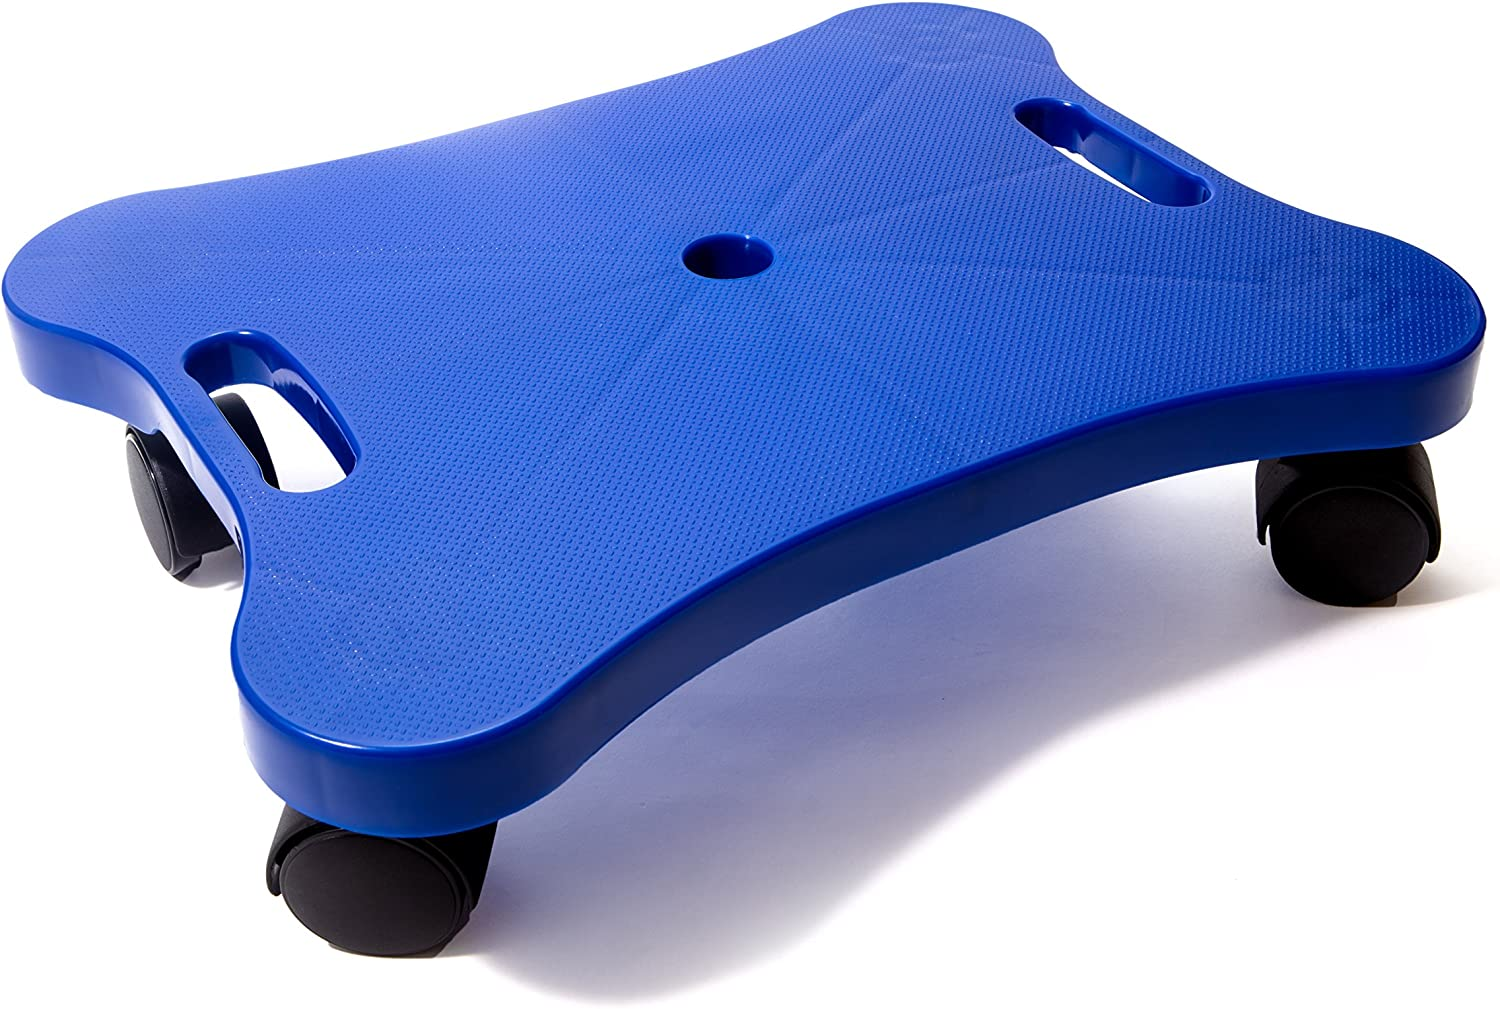 Educational Manual Plastic Scooter Board with Safety Handles 16 x 12 inches Perfect for Kids, Teens, Adults PE, Gym Class, Daycare, Preschool Development, Games Blue